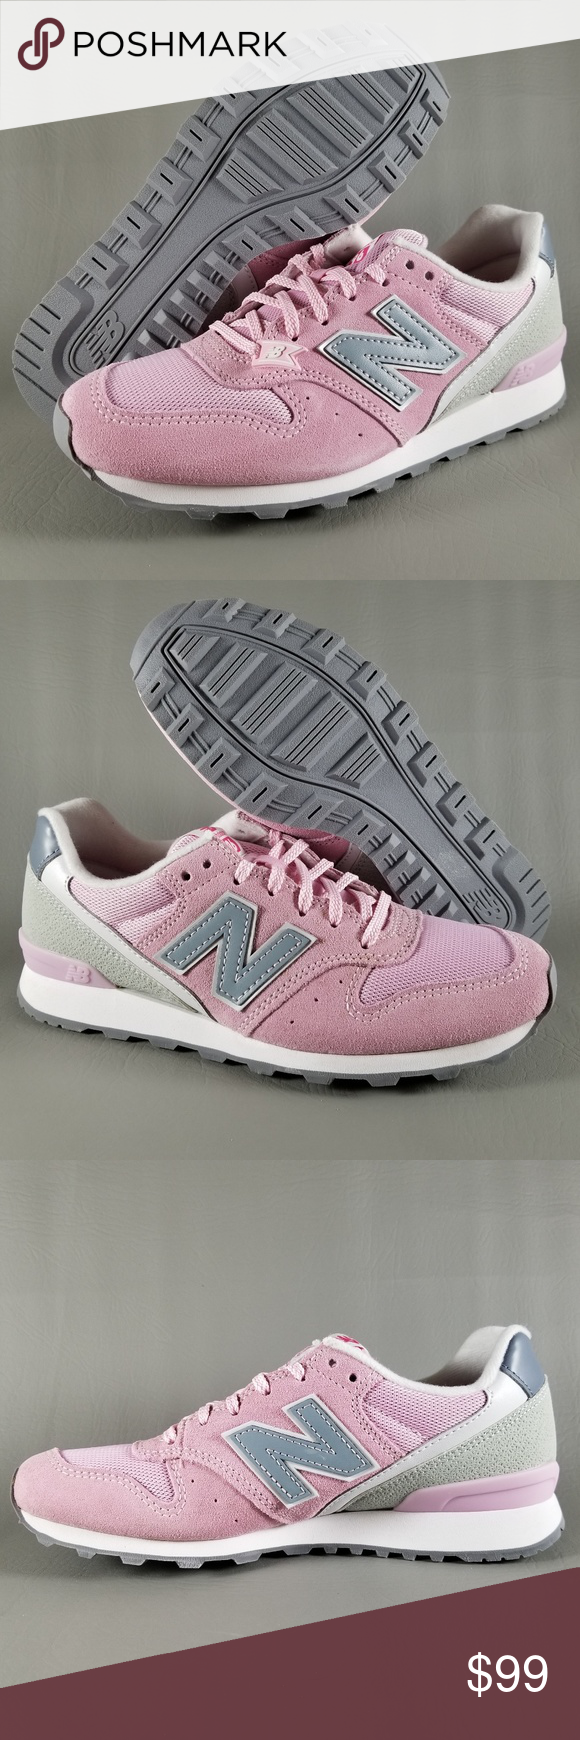 New Balance 996 Women's Athletic Shoes Pink 6.5 D New